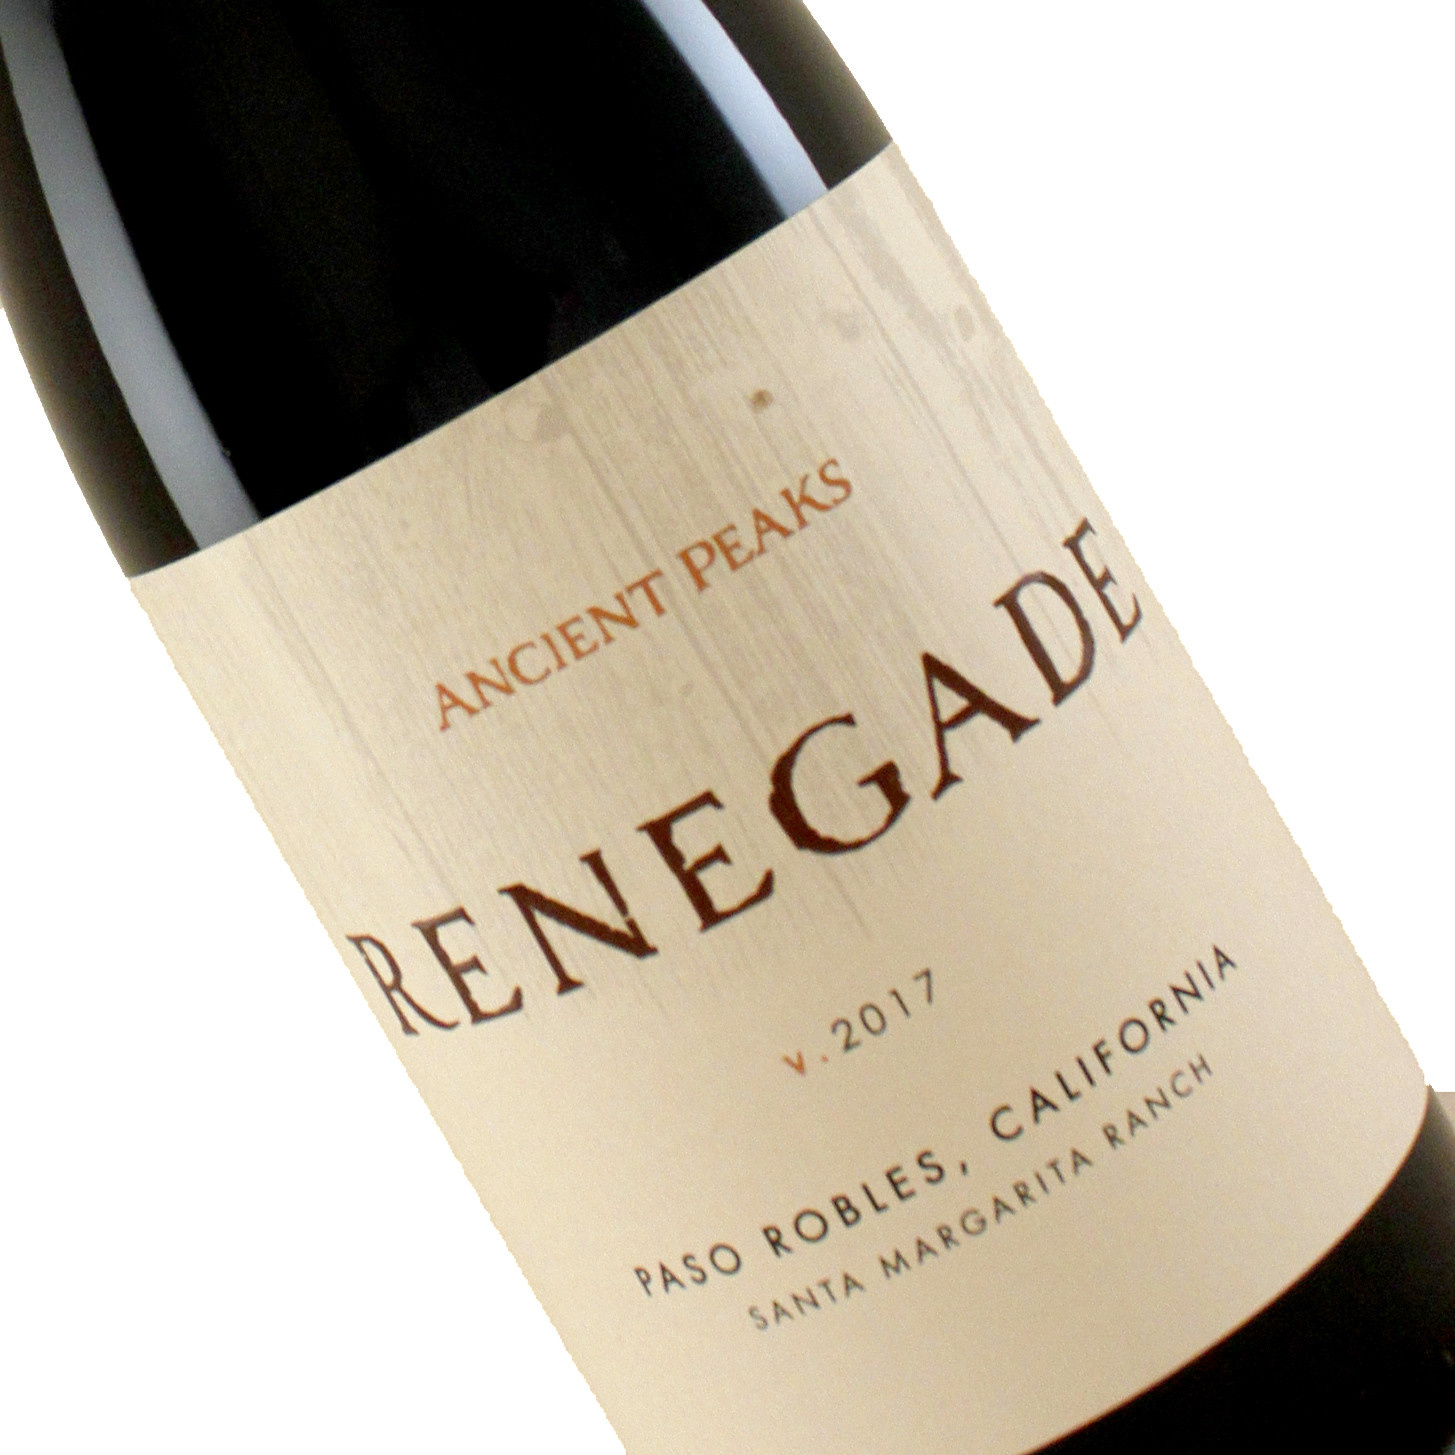 Ancient Peaks 2017 Renegade, Red Blend Paso Robles, California